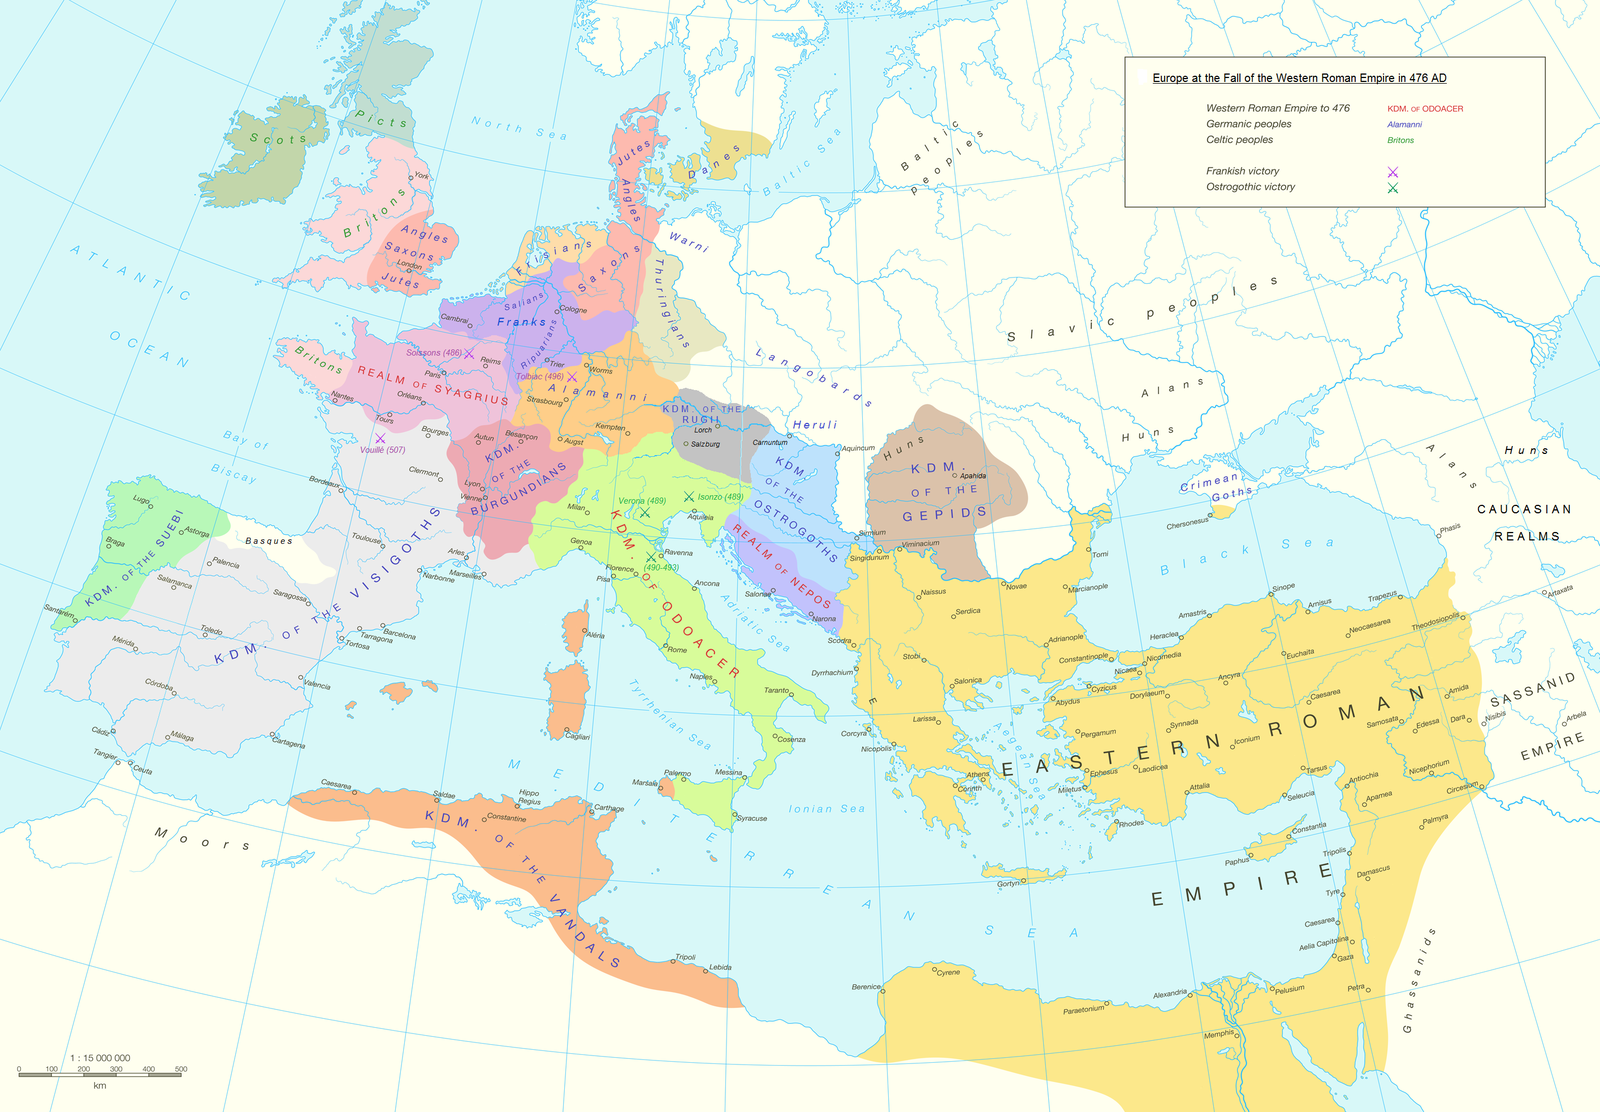 a history of the fall of the roman empire in 476 ad Roman empire (27 bc – 476 ad) the roman empire was founded when augustus caesar proclaimed himself the first emperor of rome in 31bc and came to an end with the fall of constantinople in 1453ce an empire is a political system in which a group of people are ruled by a single individual, an emperor or empress.